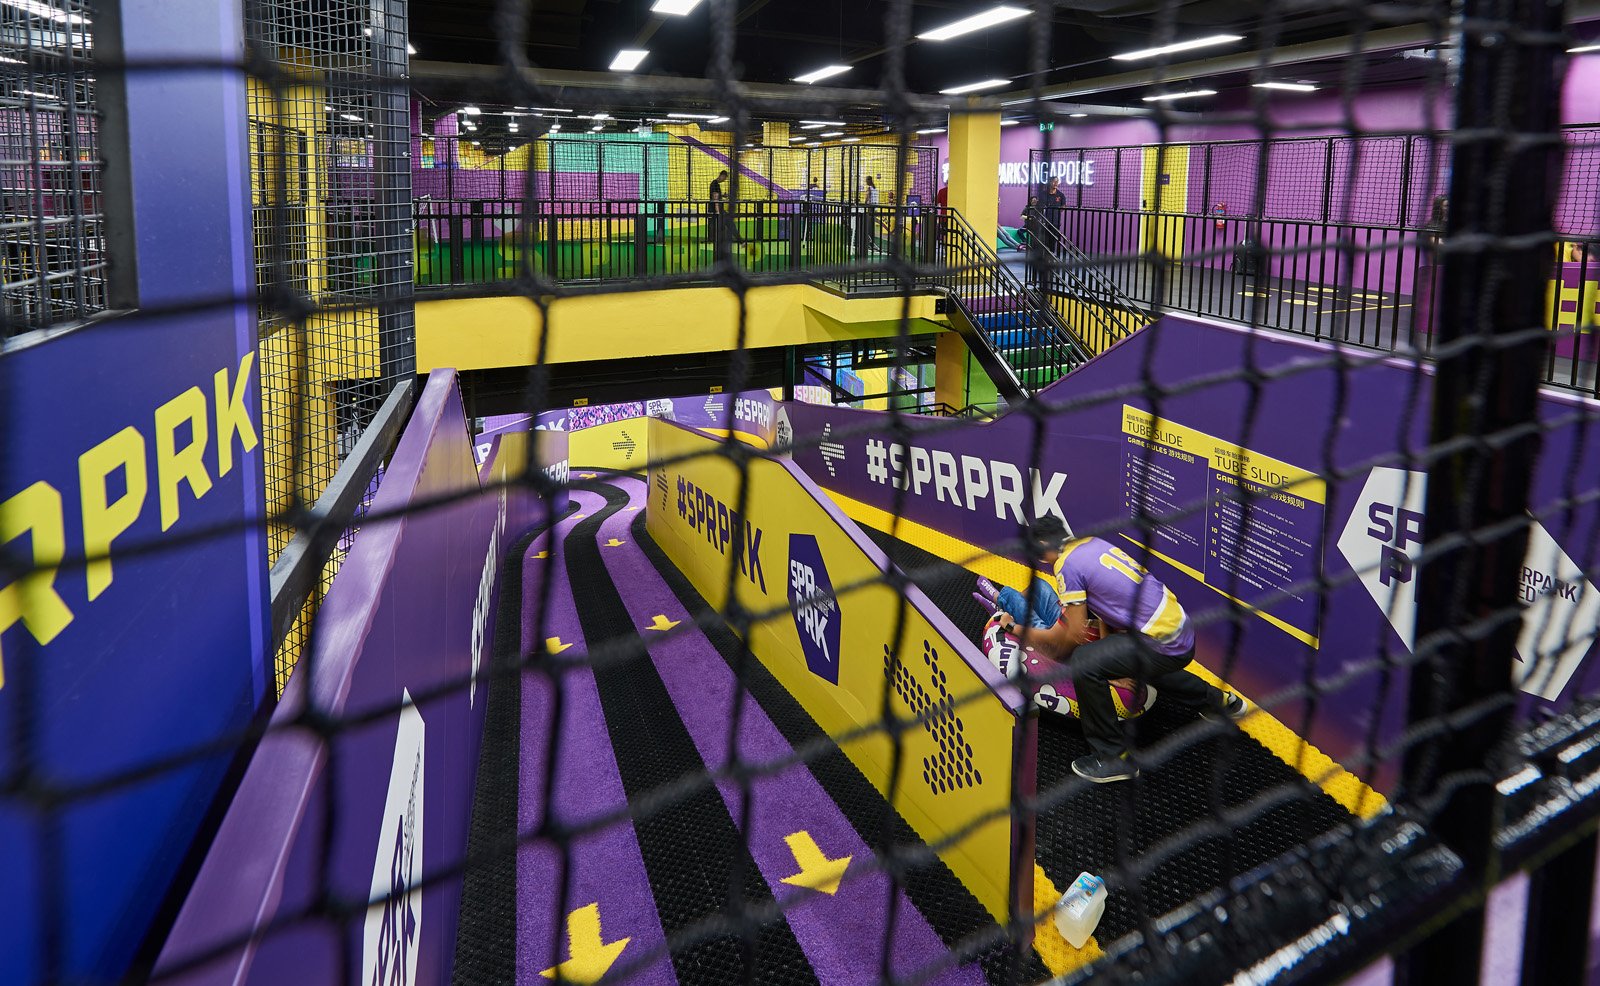 SuperPark_SC_Interior1